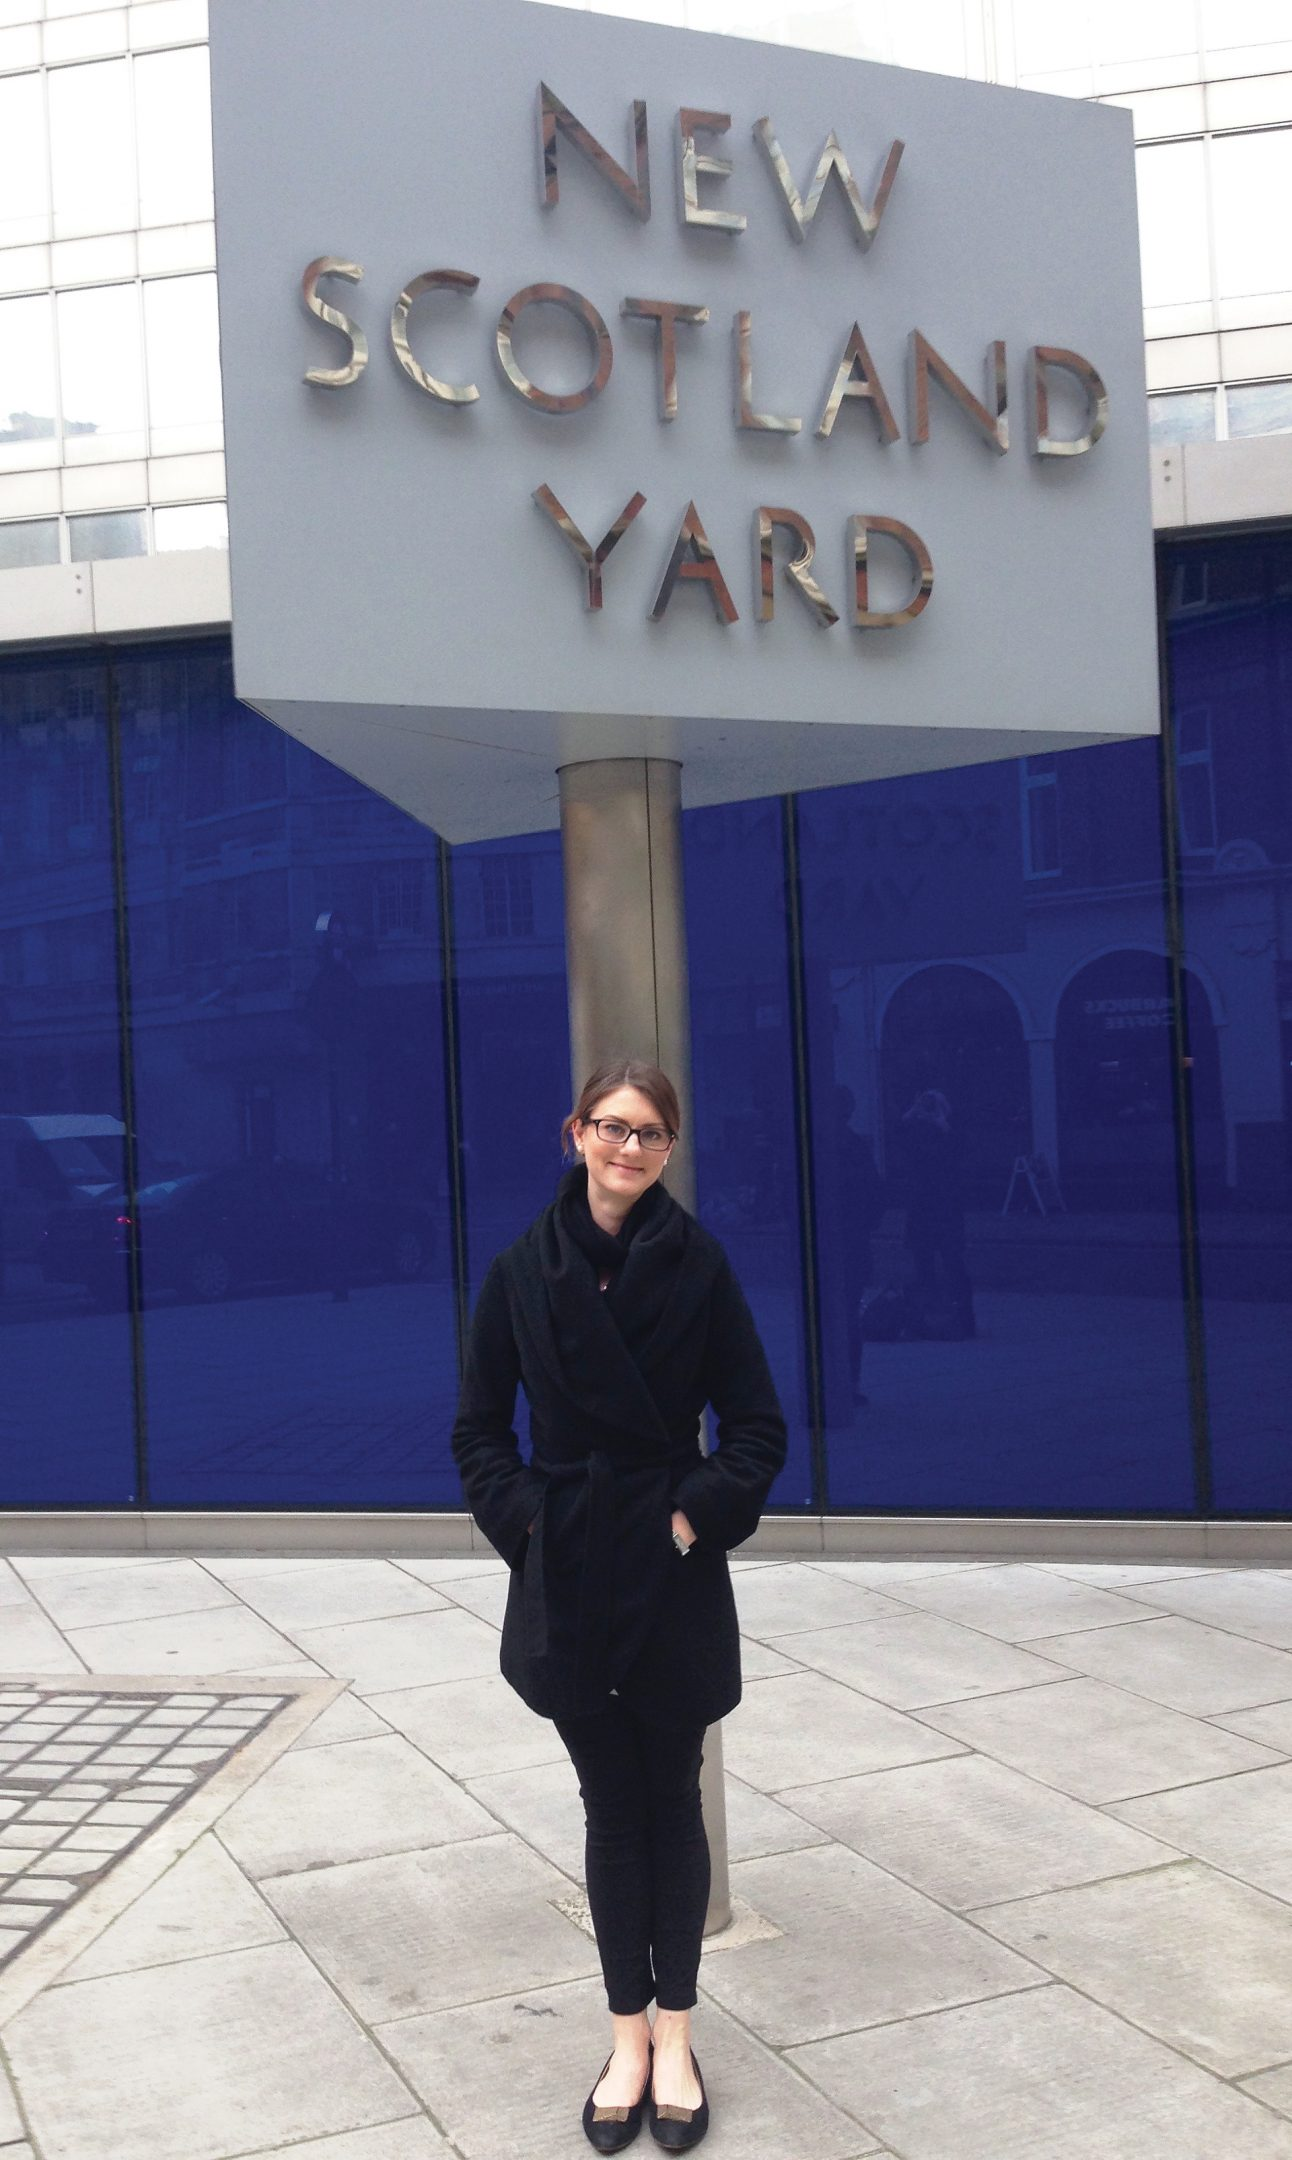 Joana Cook poses at the Scotland Yard sign in front of the Curtis Green Building on the Victoria Embankment.